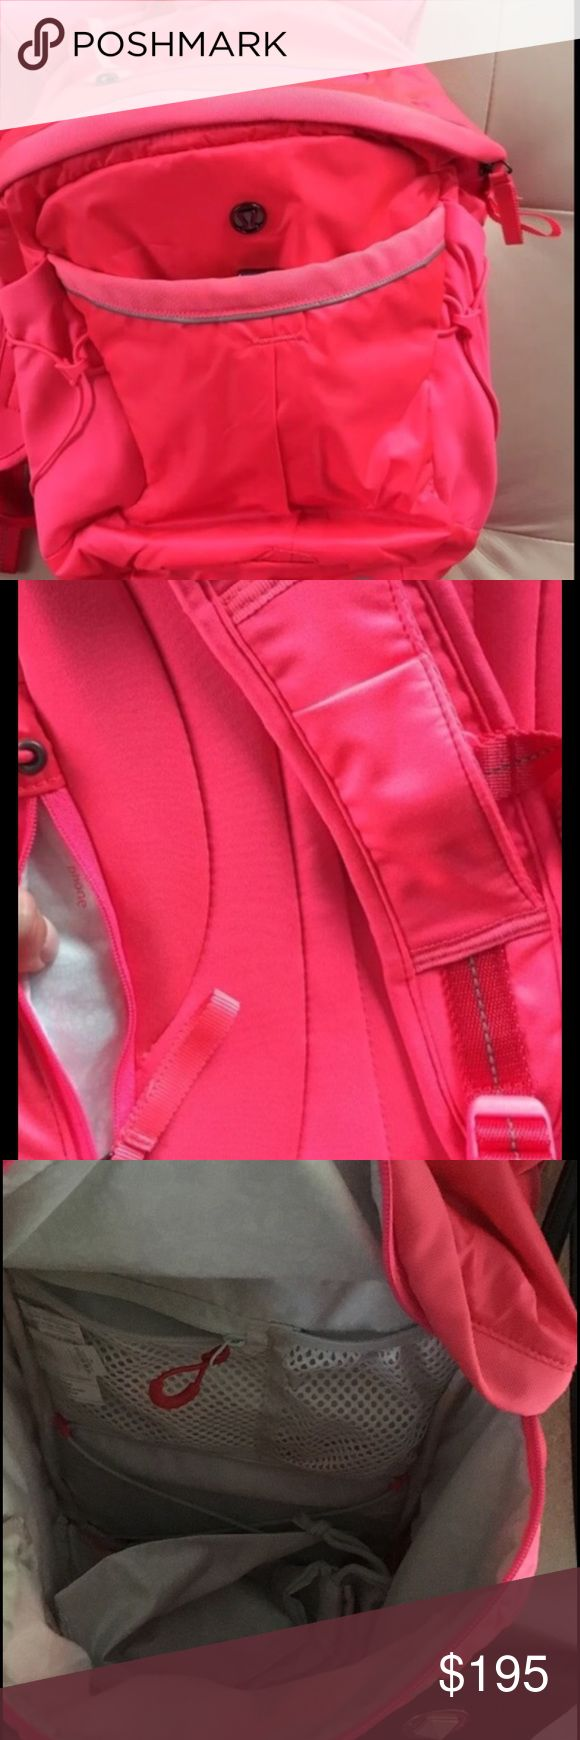 Hot pink lululemon backpack Flawless neon pink backpack. Never used . No trades thank you lululemon athletica Bags Backpacks